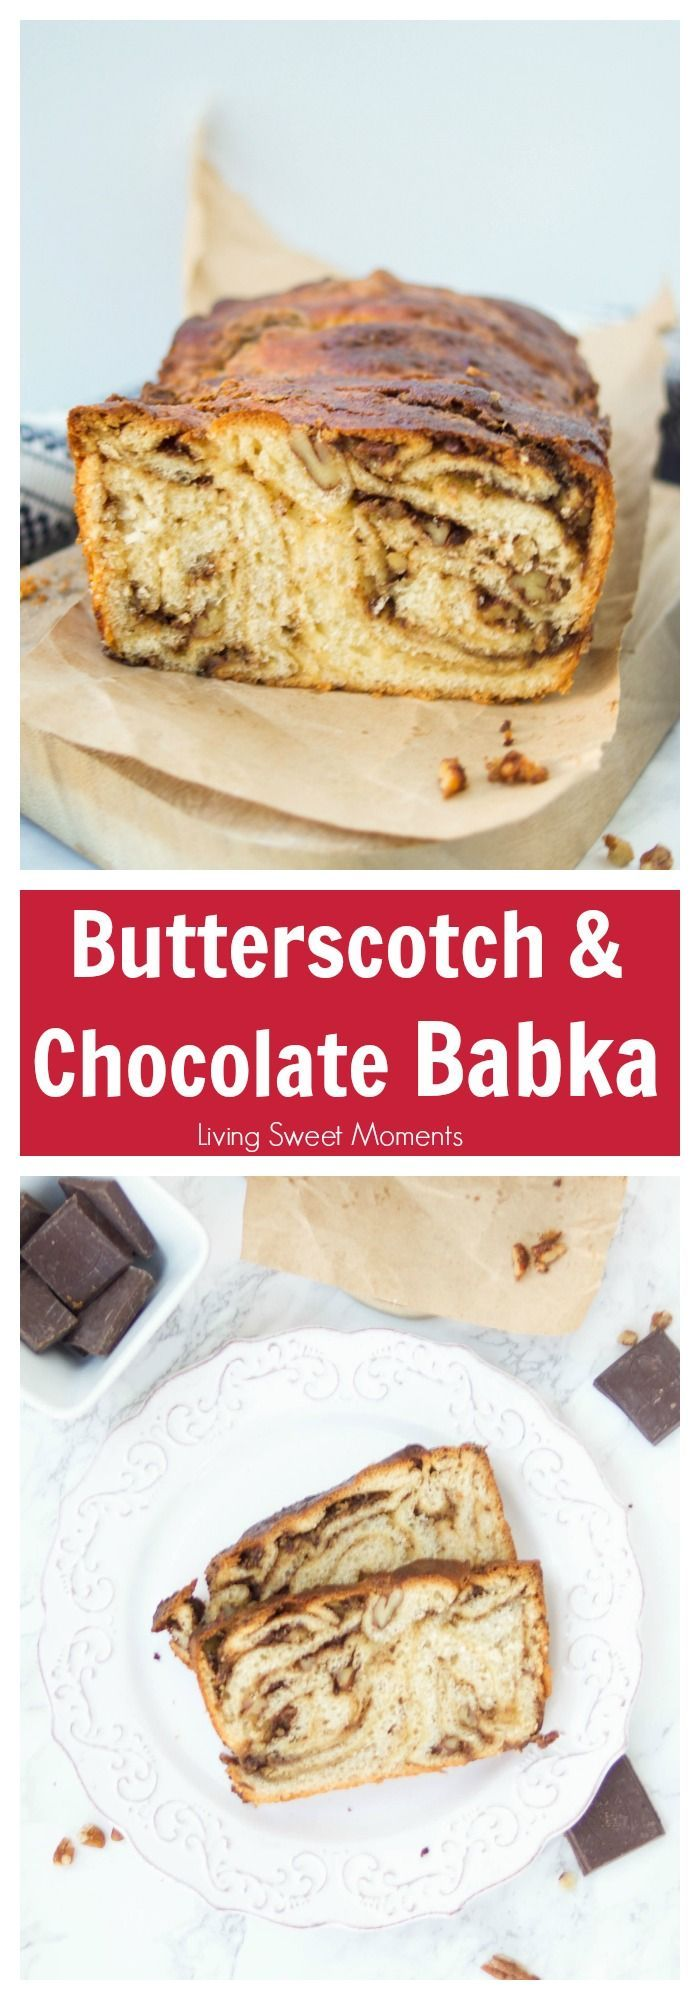 This moist butterscotch Chocolate Babka recipe is soft, delicious, and has a crunchy addition of pecans. Enjoy this babka for breakfast, brunch or dessert. More yummy recipes at livingsweetmoments.com